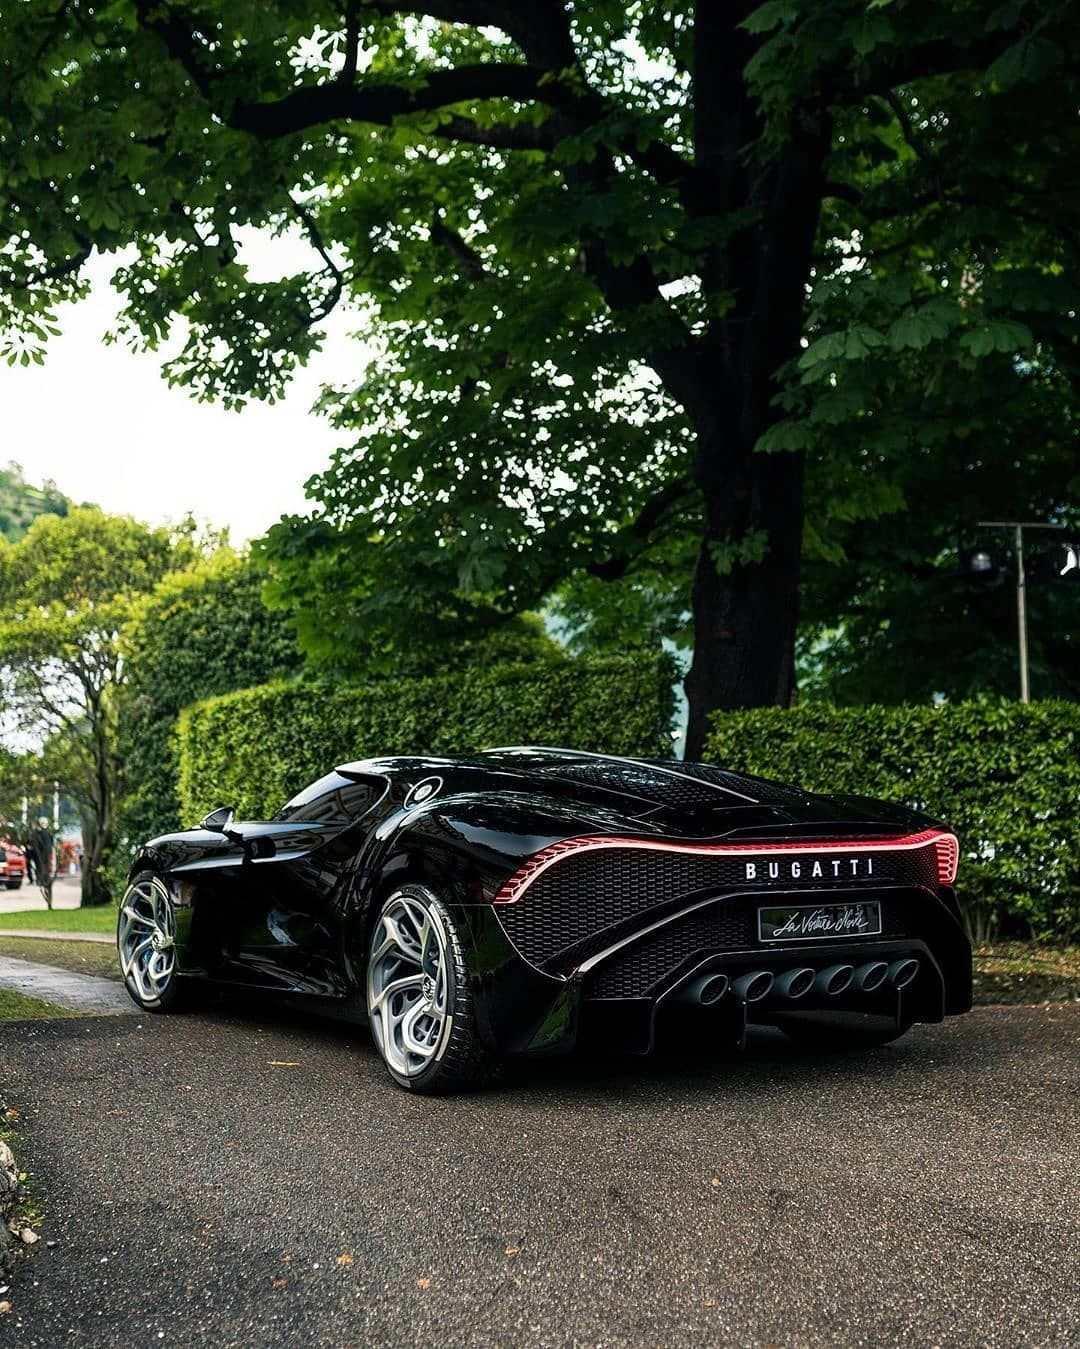 La Voiture Noire Rate The Black Monster 1 100 Pic By Zachbrehl